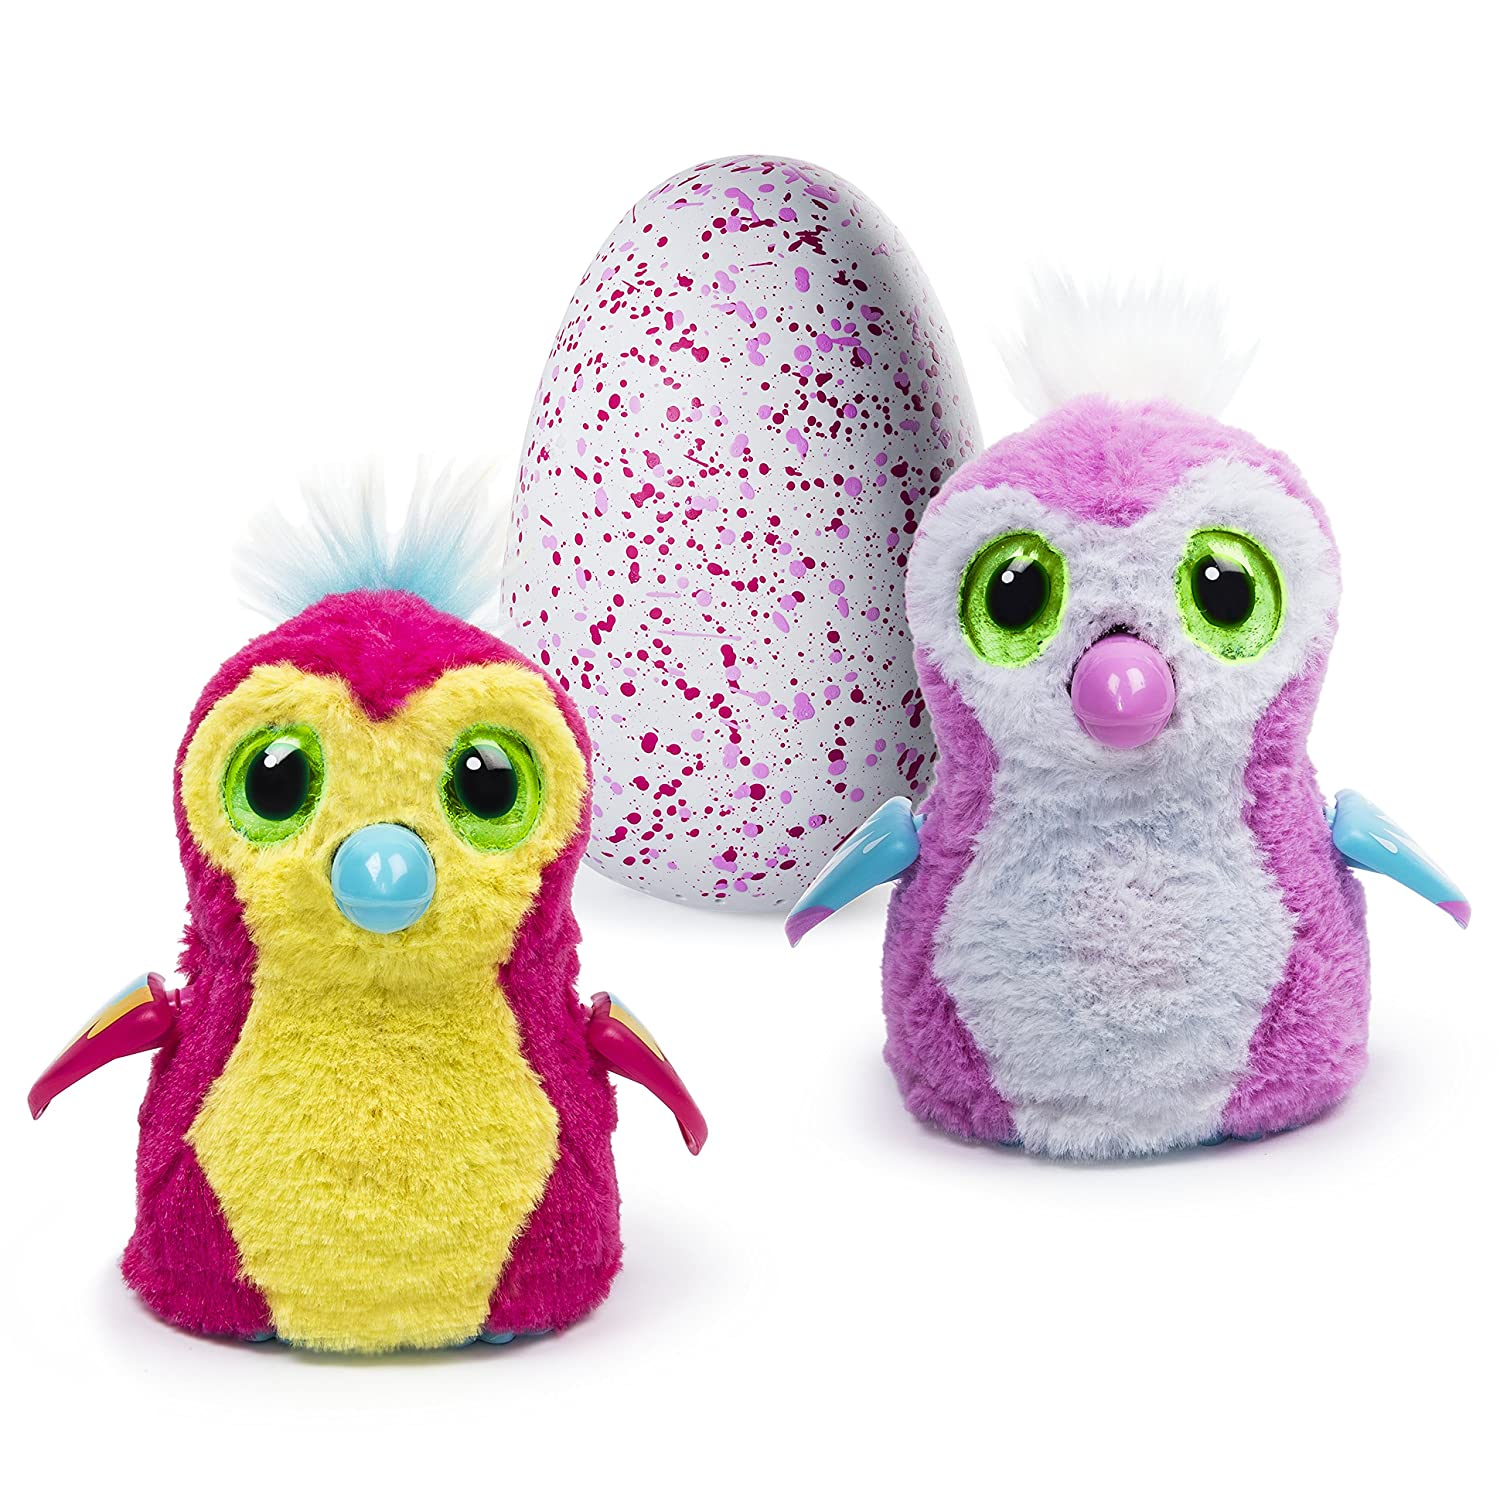 HATCHIMALS Pengualas Teal Egg Uovo Sorpresa, Colore Rosa, 6028874 Spin Master